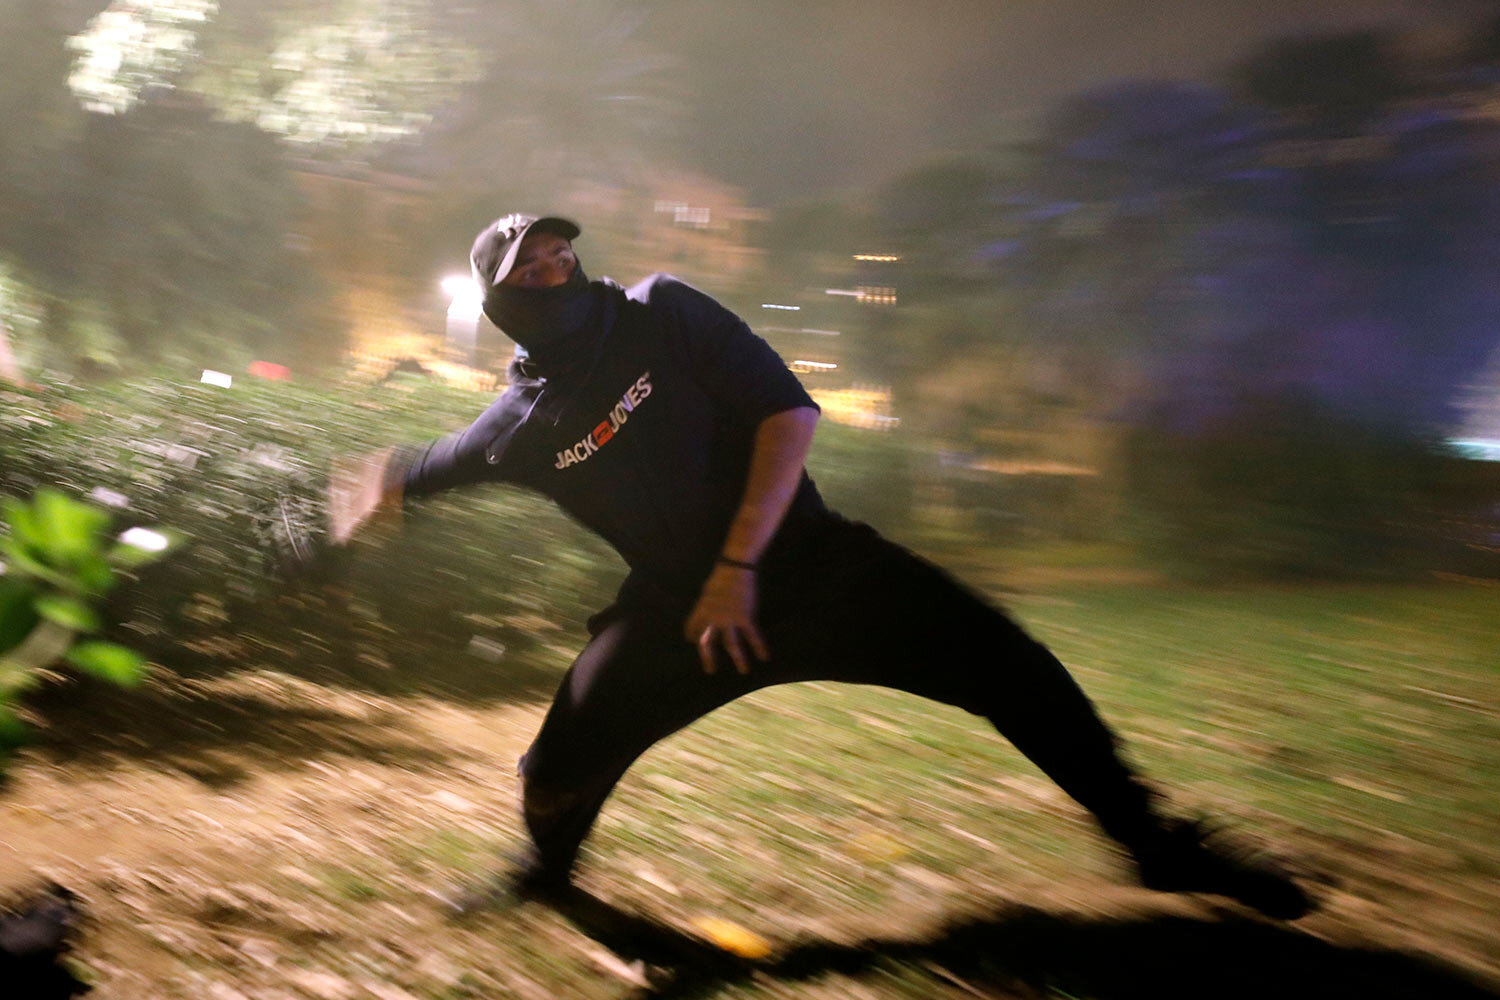 A protestor hurls a rock at police during clashes in Barcelona, Spain, Wednesday, Oct. 16, 2019. (AP Photo/Emilio Morenatti)